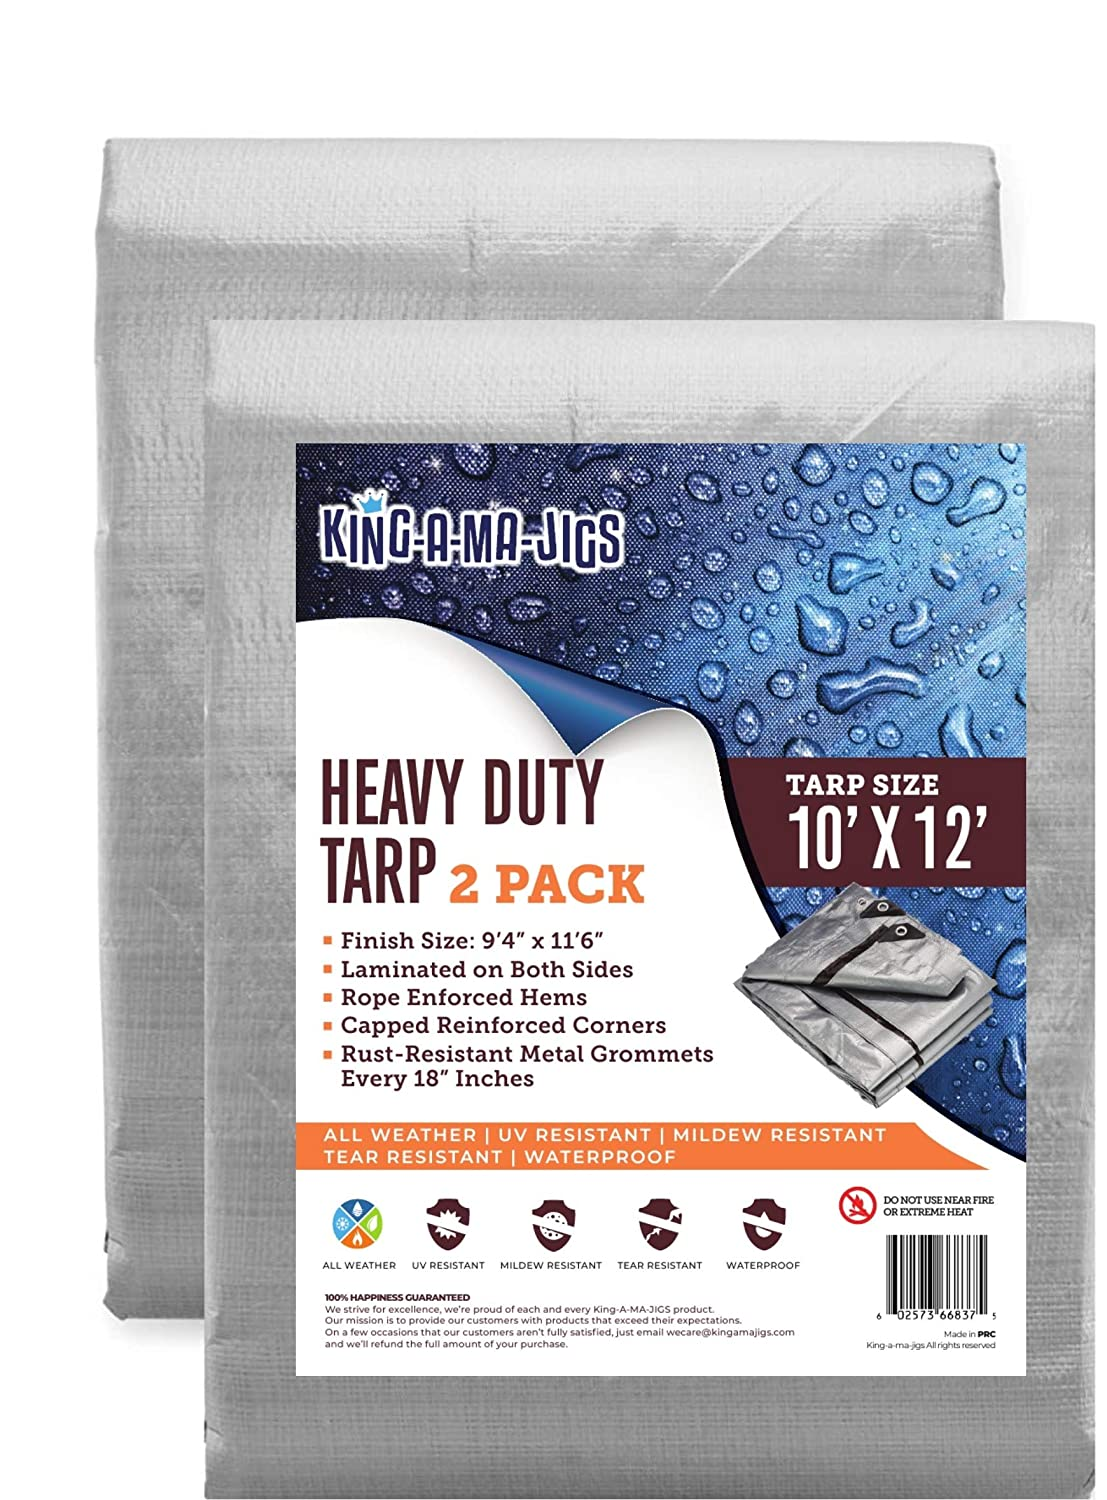 (2 Pack) 10x12 Heavy Duty Waterproof Tarp - Metal Grommets Every 18 Inches - Emergency Rain Shelter, Outdoor Cover and Camping Use - (10 Mil) (Silver and Brown) (10 Foot. x 12 Foot) 819AaOxDW2BL